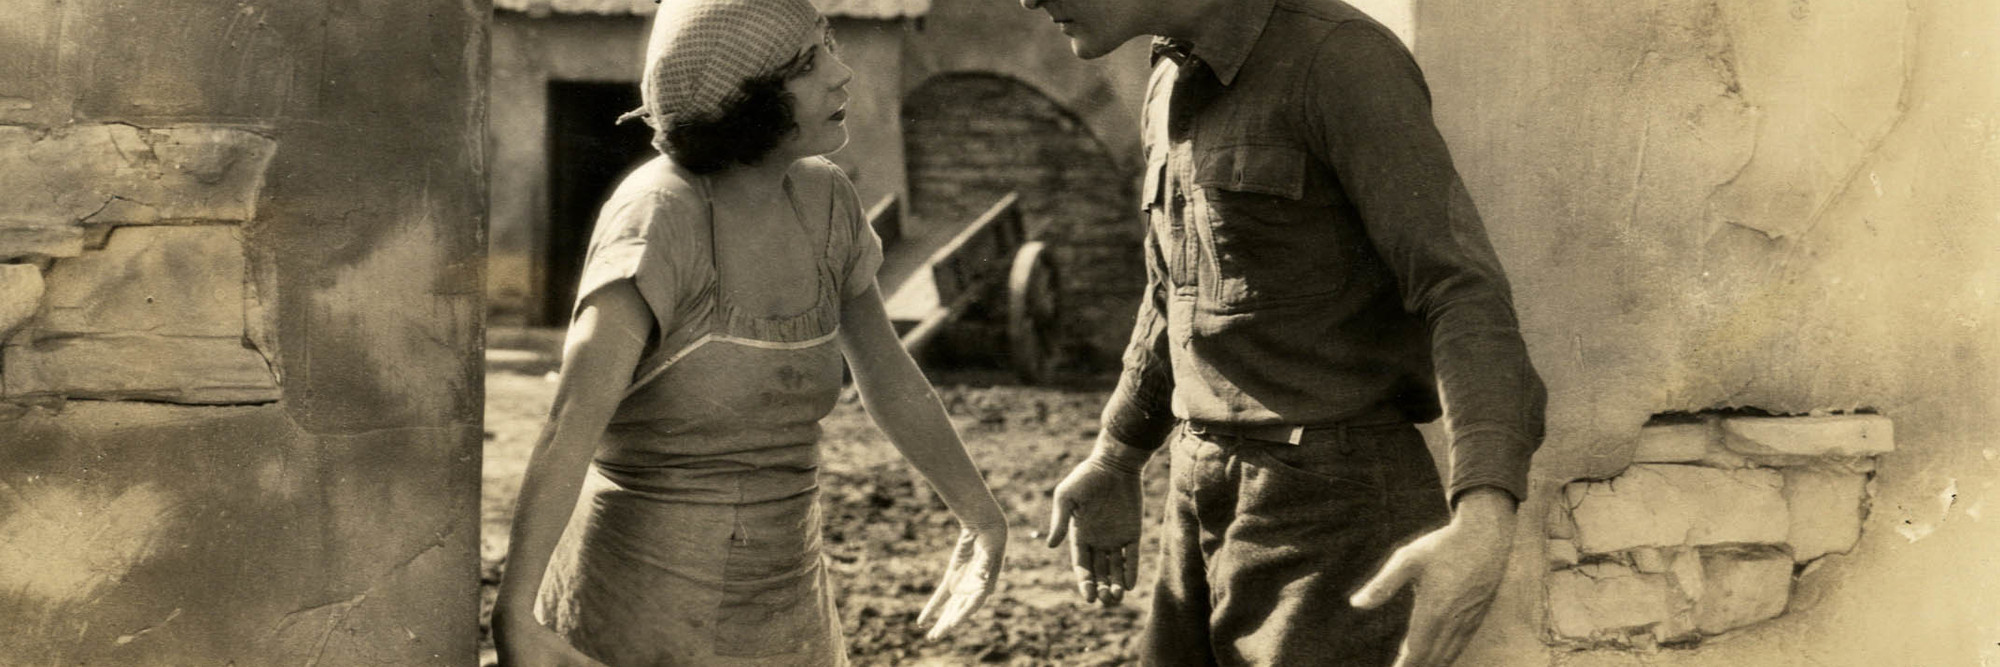 The Big Parade. 1925. USA. Directed by King Vidor